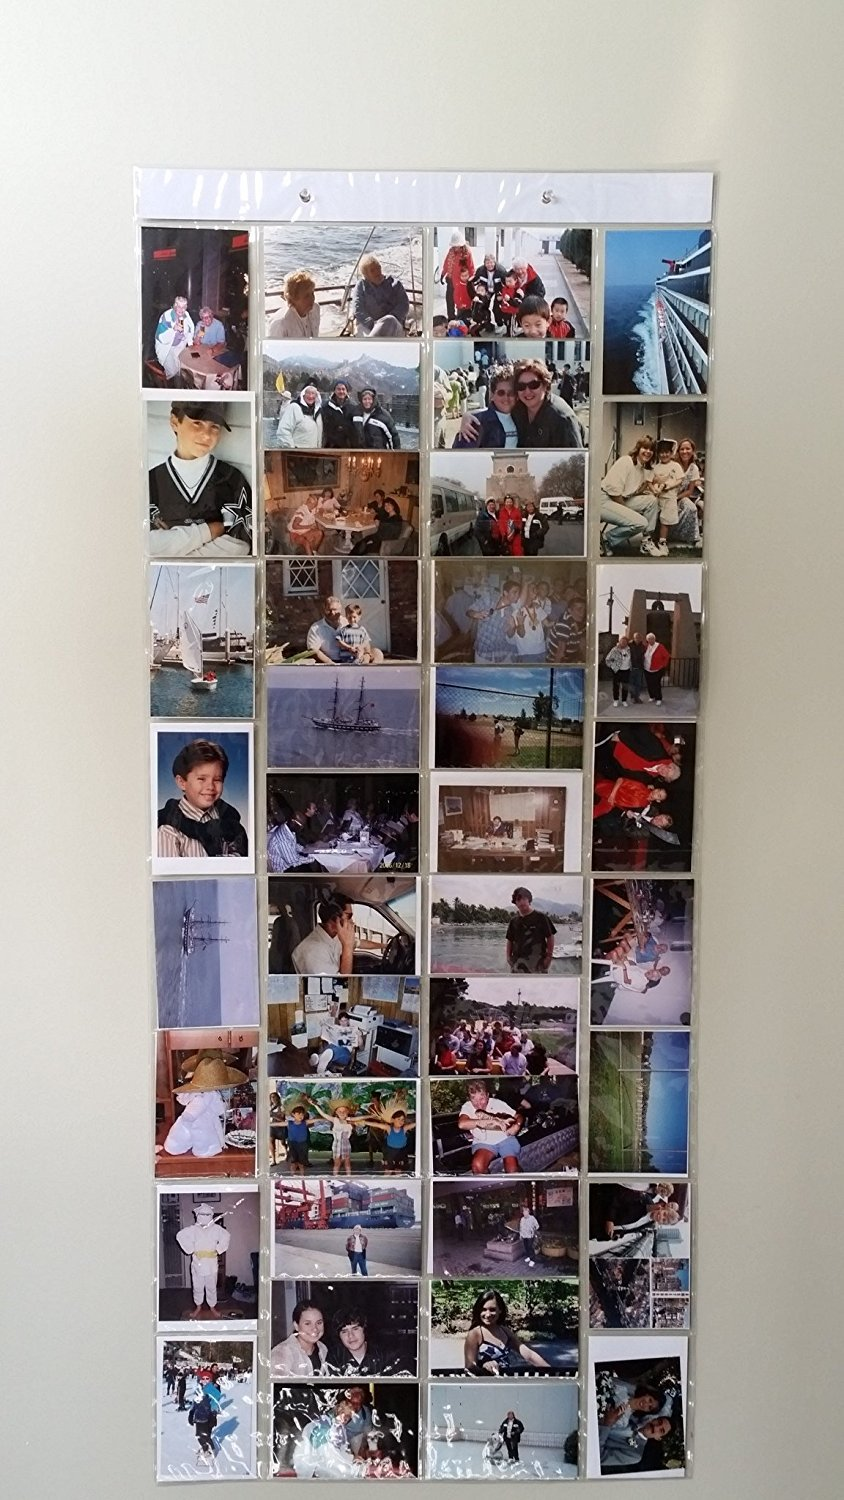 Hanging Photo Gallery, Each Picture Is In Its Own Pocket To Protect The Picture, Easy To Change Holds 80 Pictures In 40 Display Pockets